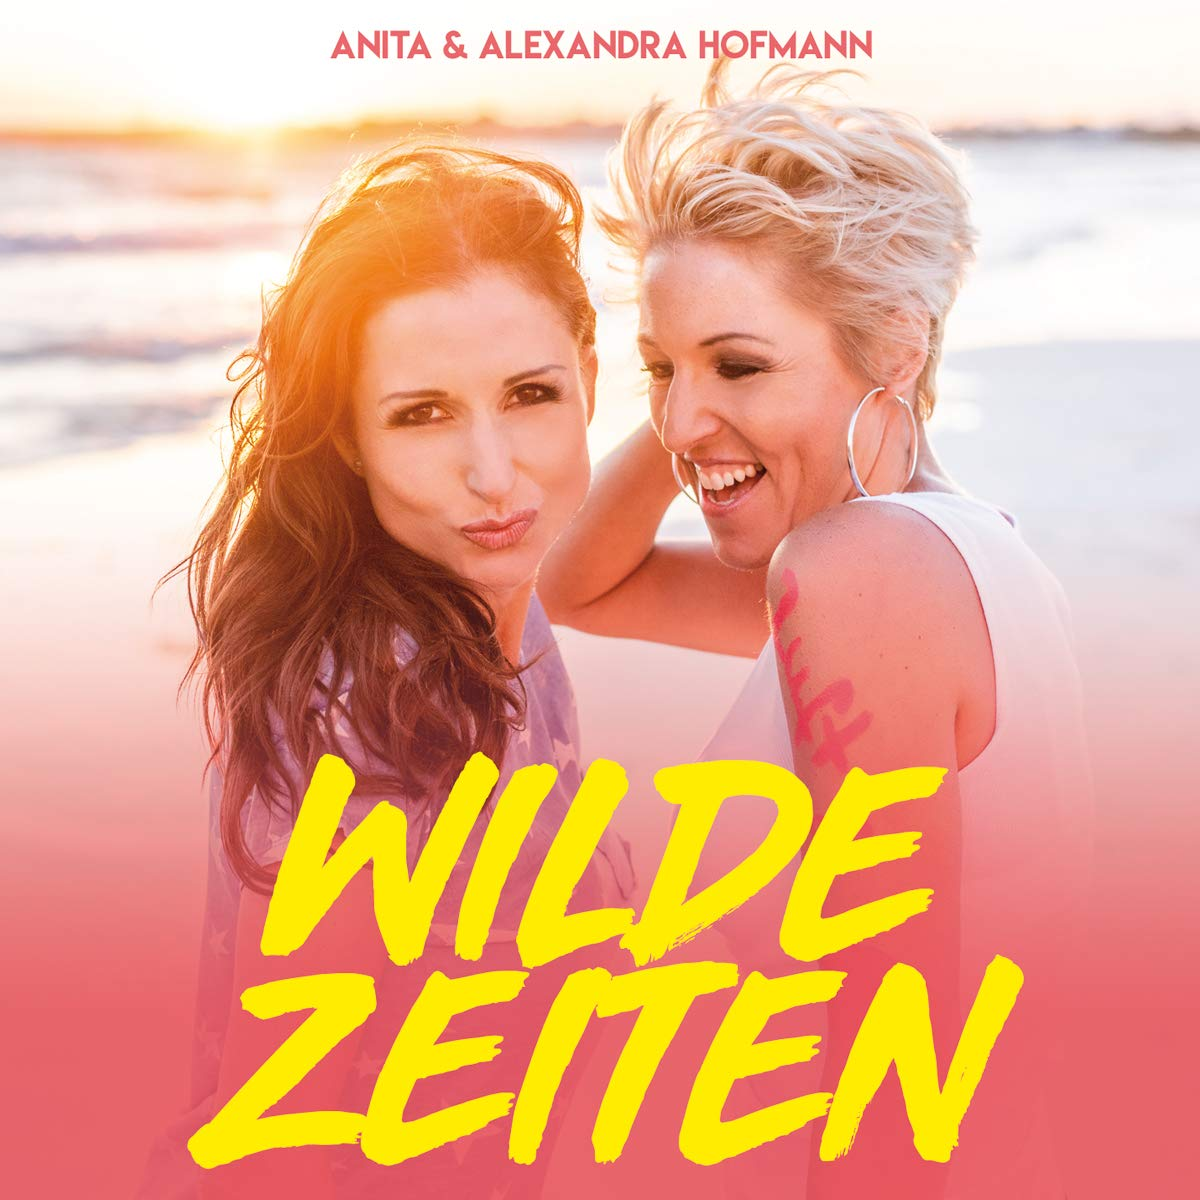 ANITA & ALEXANDRA HOFMANN * Wilde Zeiten (CD) * Auch als Fan-Box erhältlich!